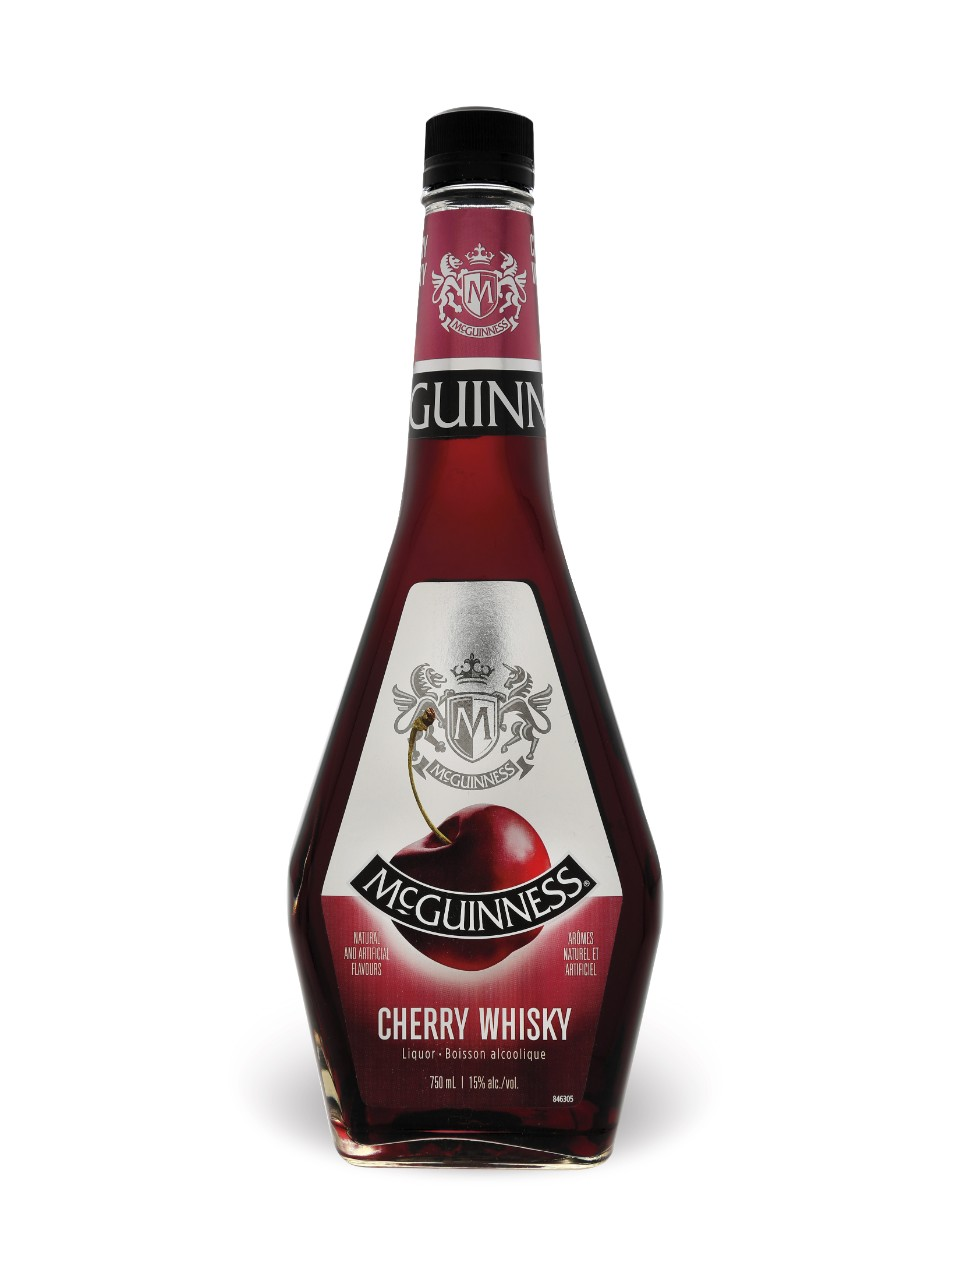 McGuinness Cherry Whisky